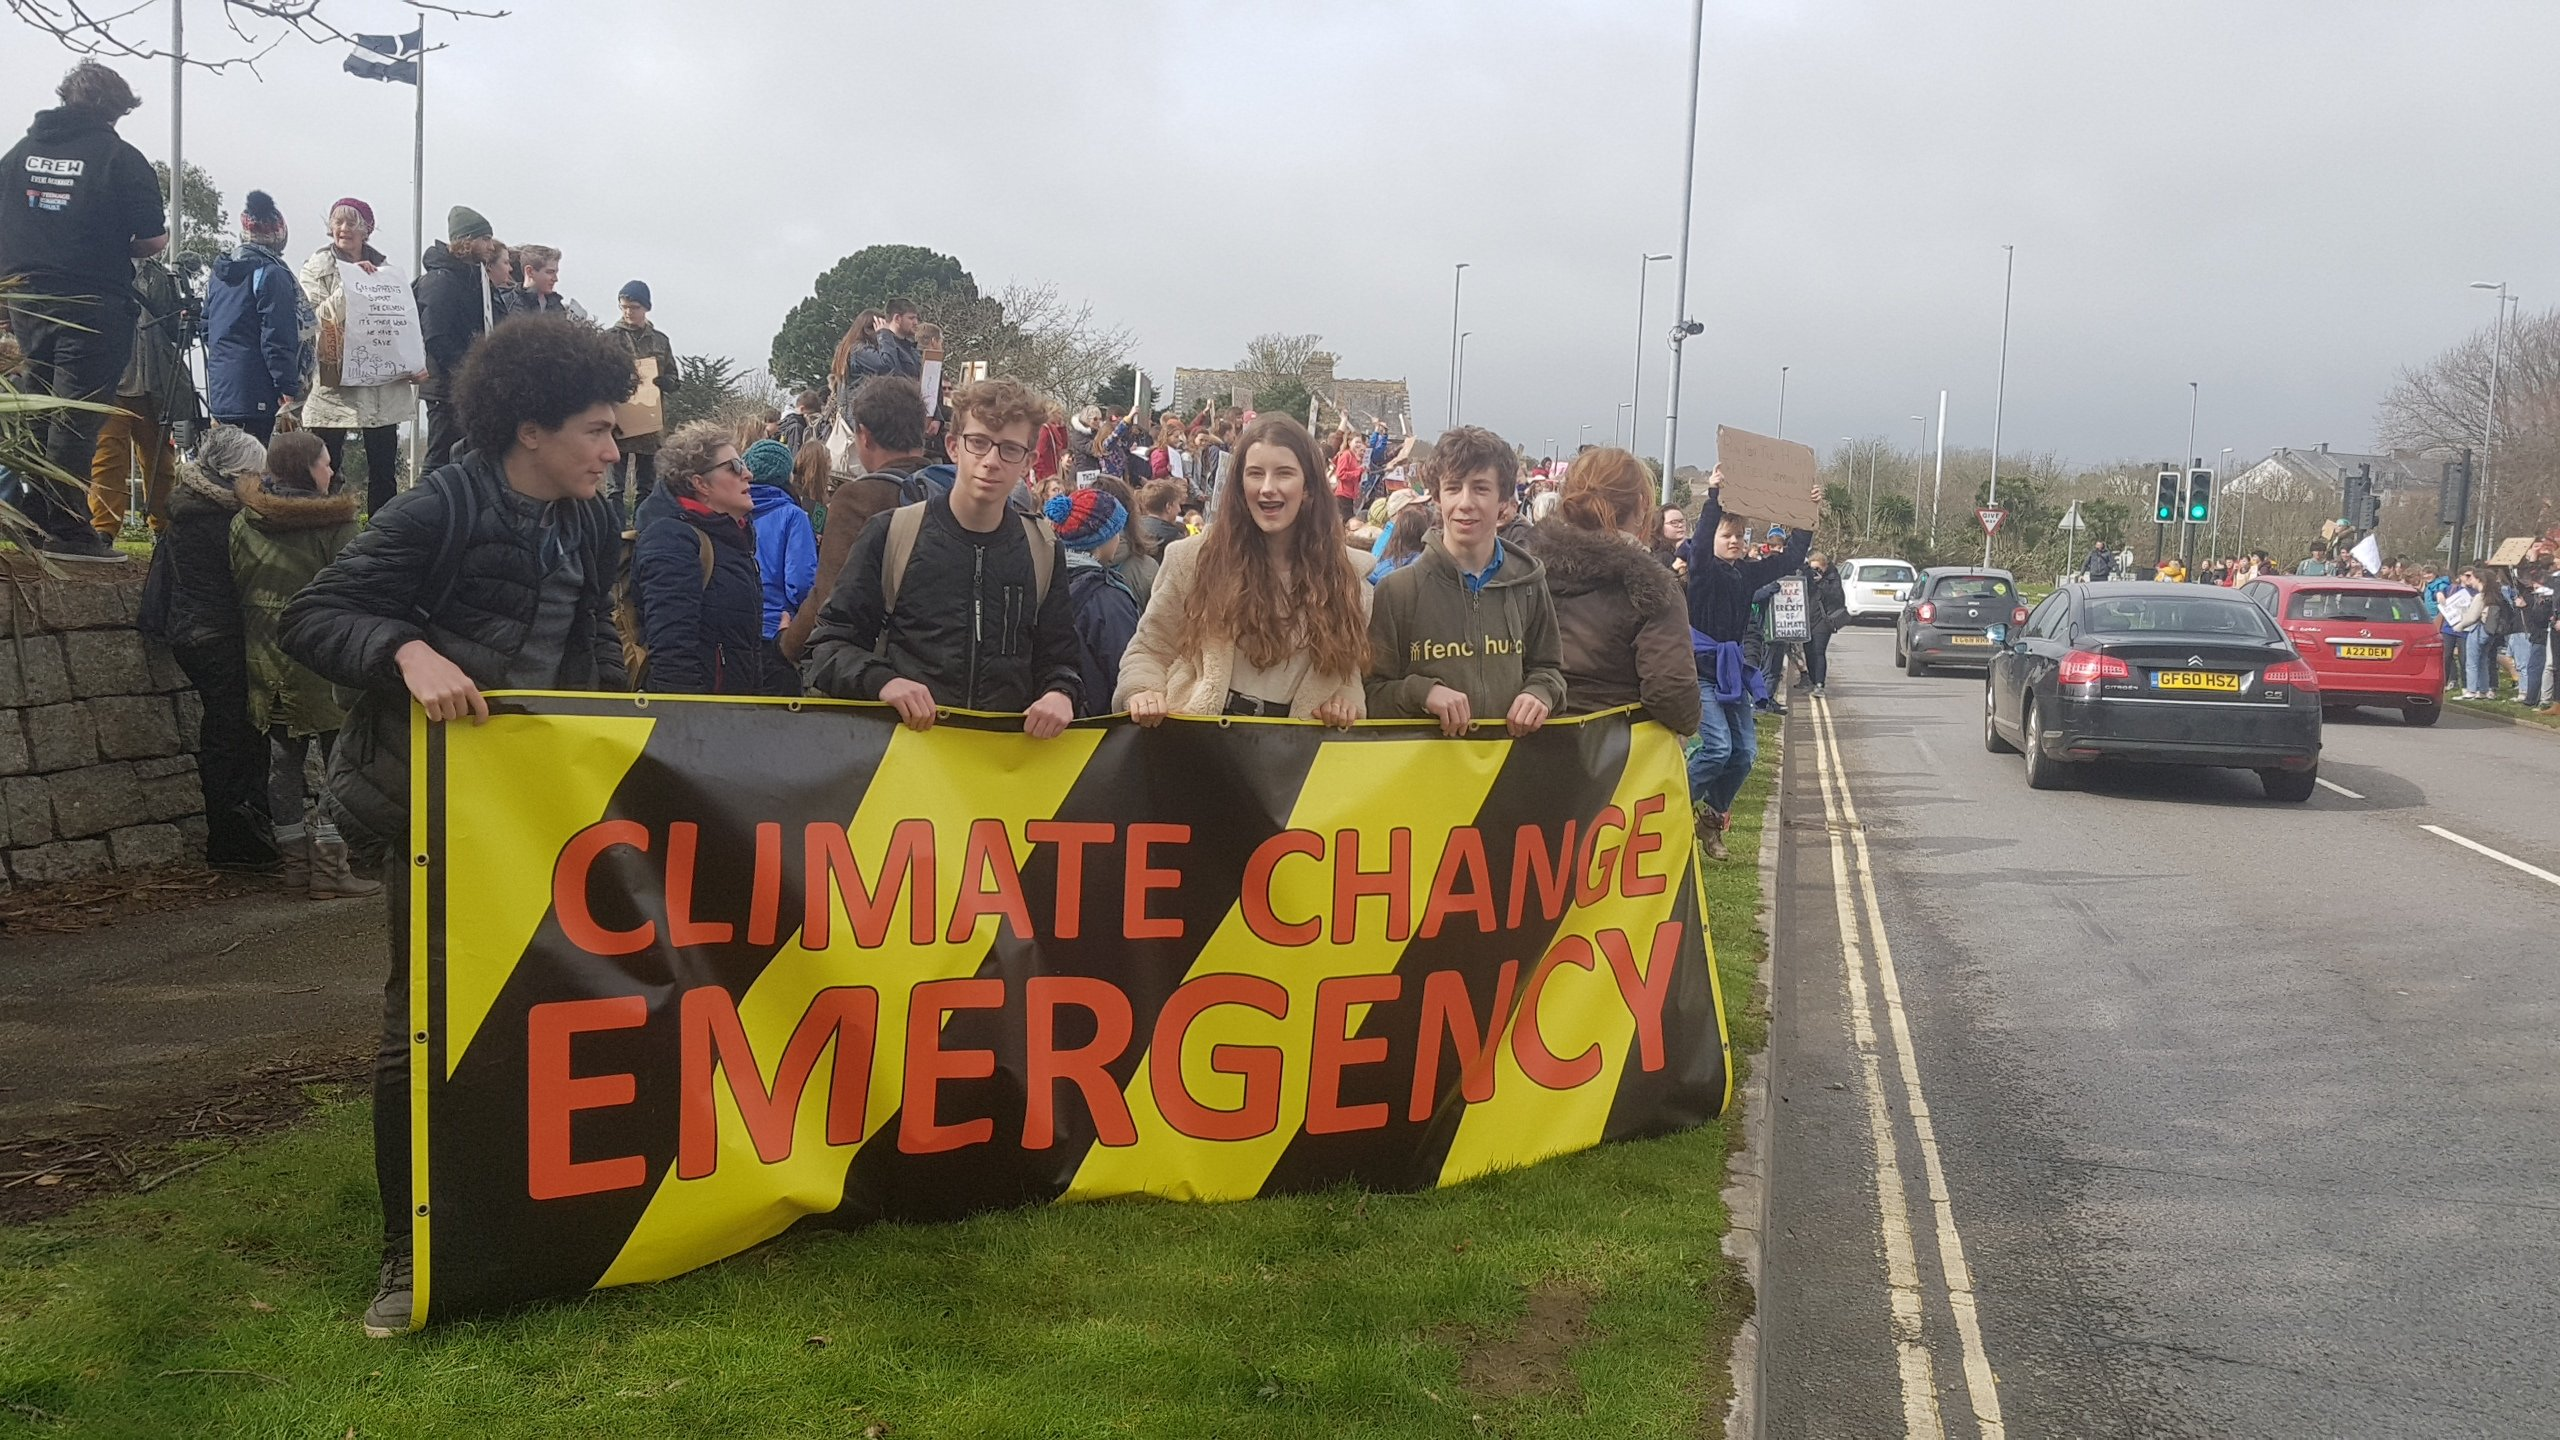 Second Youth Strike 4 Climate in Truro